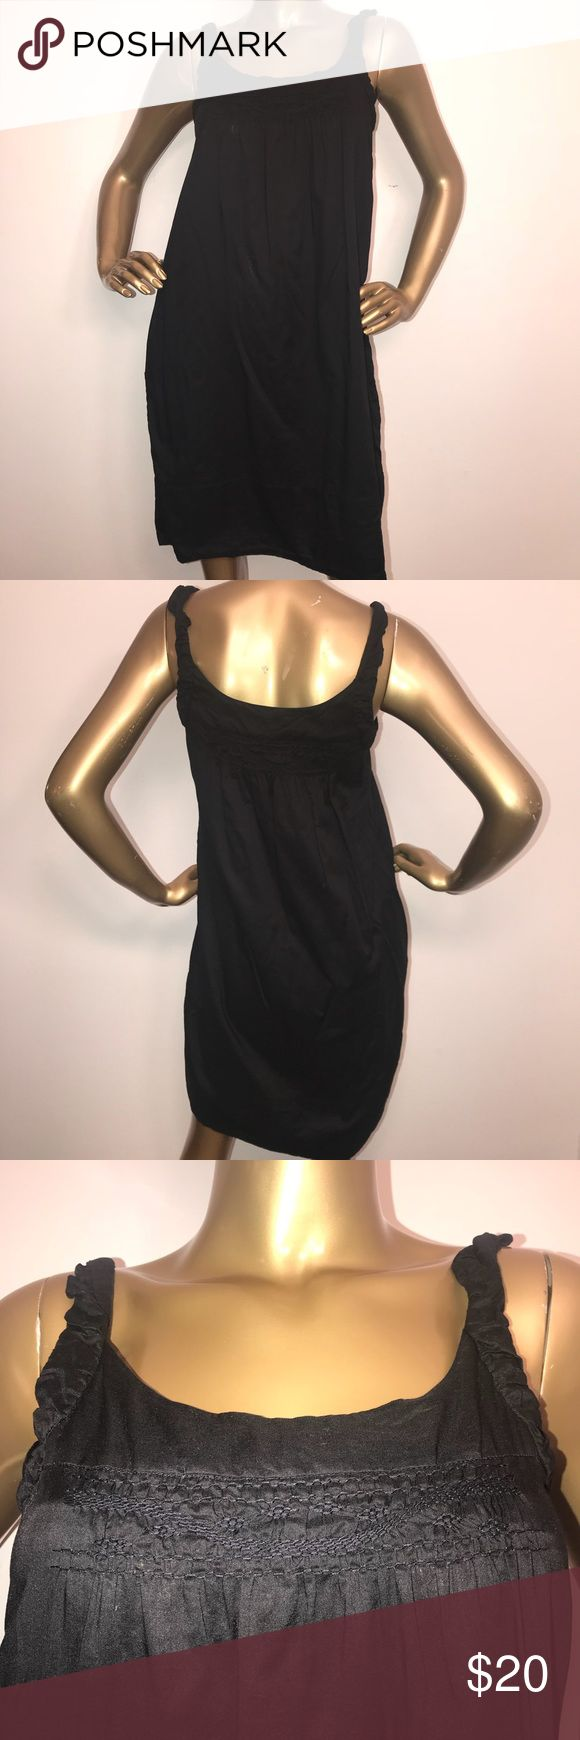 Vince 100% Cotton Black Sundress size Small Women's Vince 100% Cotton black sundress in size Small. Excellent condition with minor wash wear. Measurements provided in photos. Any questions, feel free to ask. Vince Dresses Midi